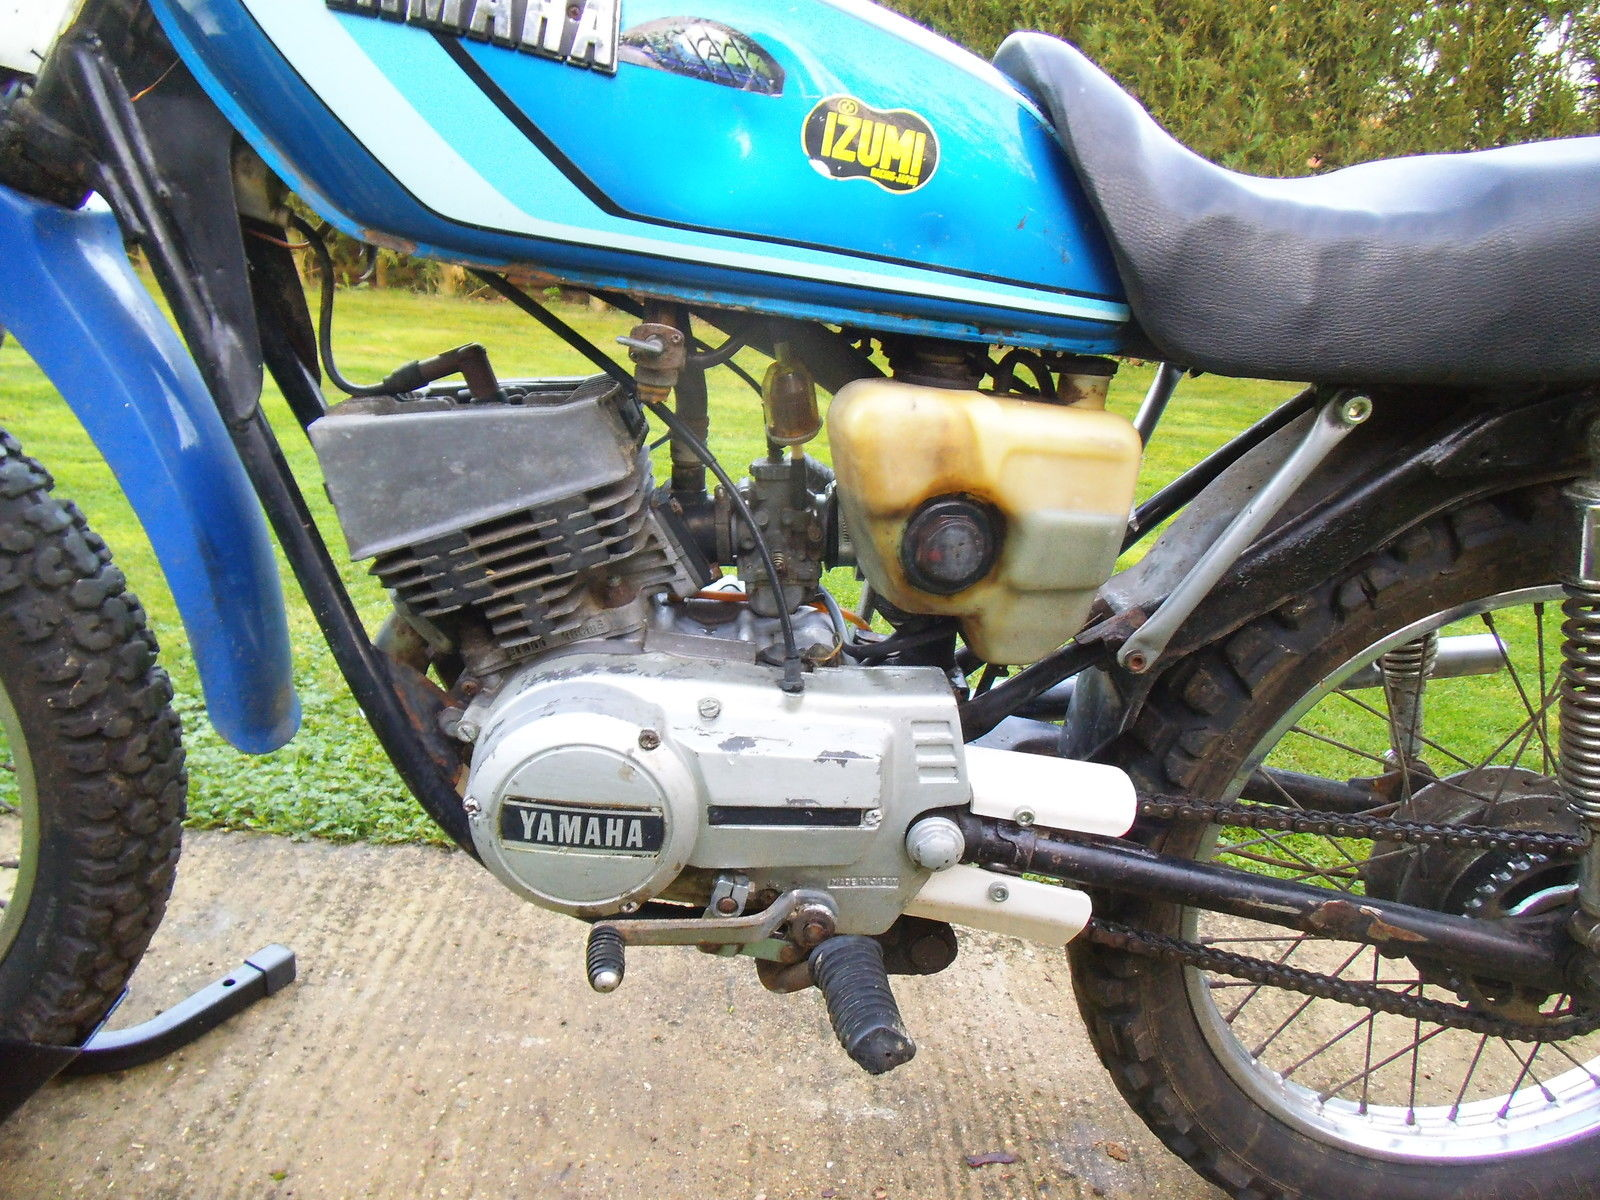 YAMAHA RSX 100CC / YB 100 2 STROKE FILED BIKE OFF ROAD ...